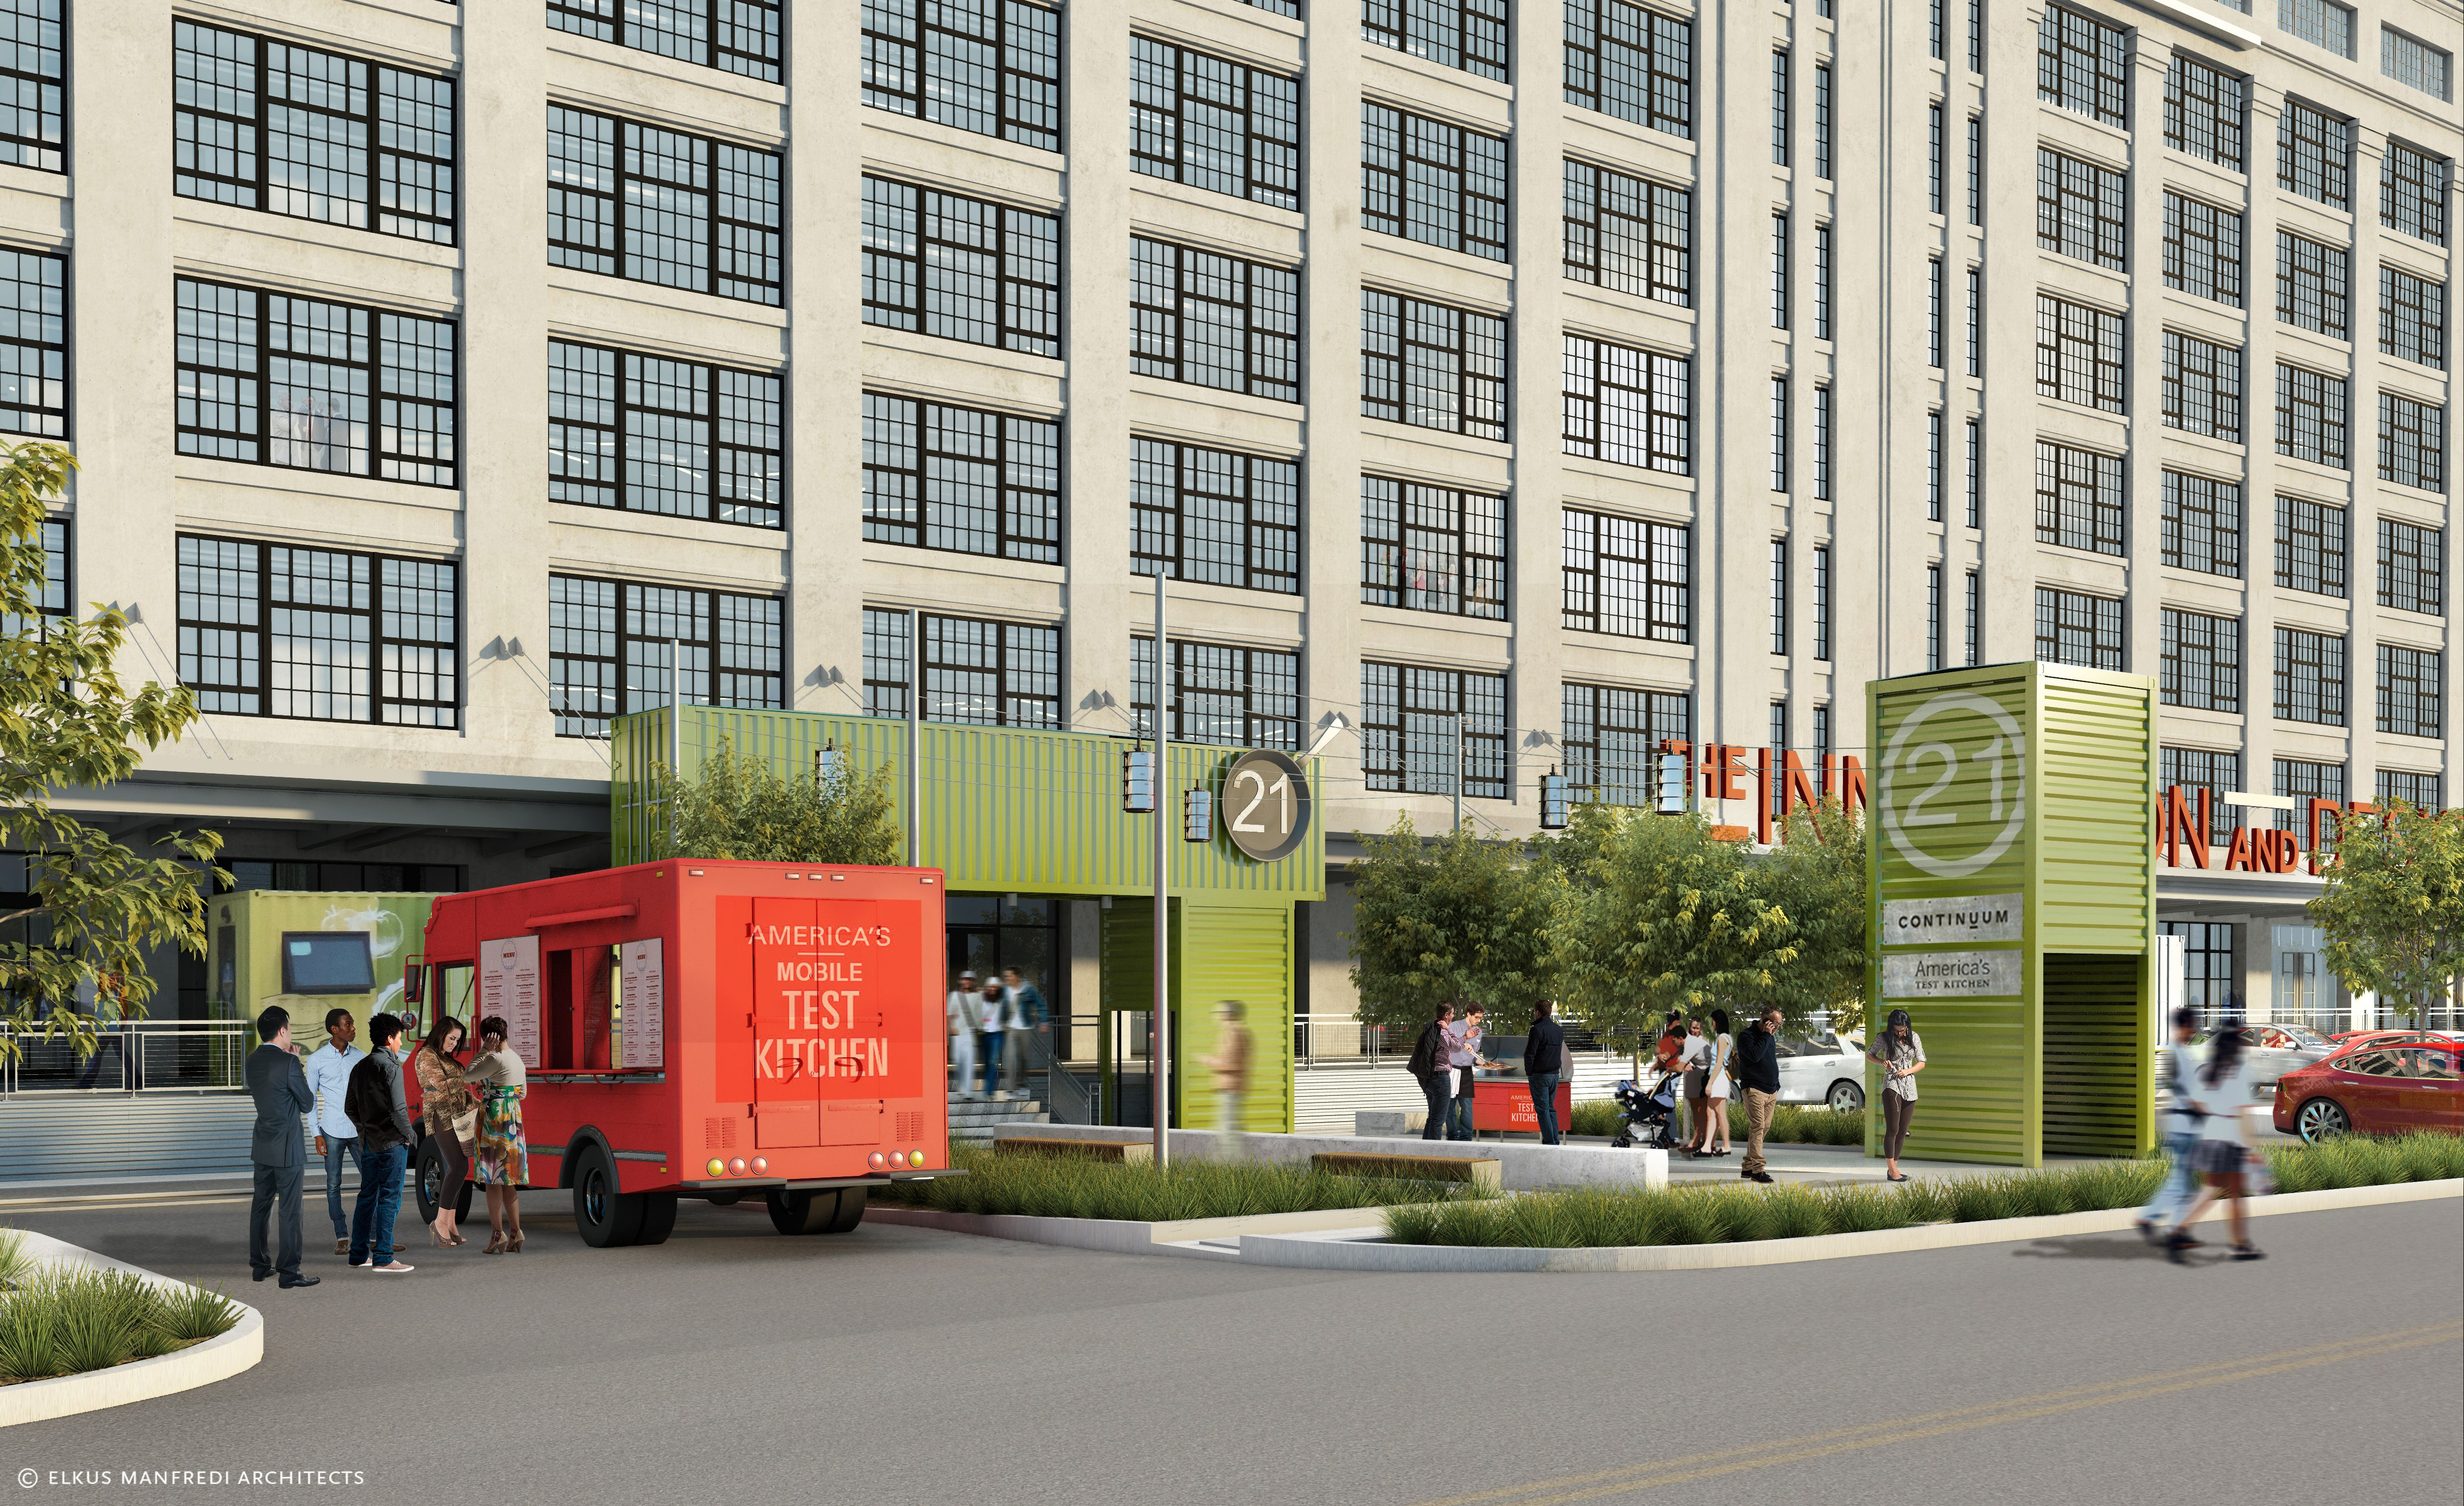 America S Test Kitchen To Double Space With Move To Seaport The Boston Globe